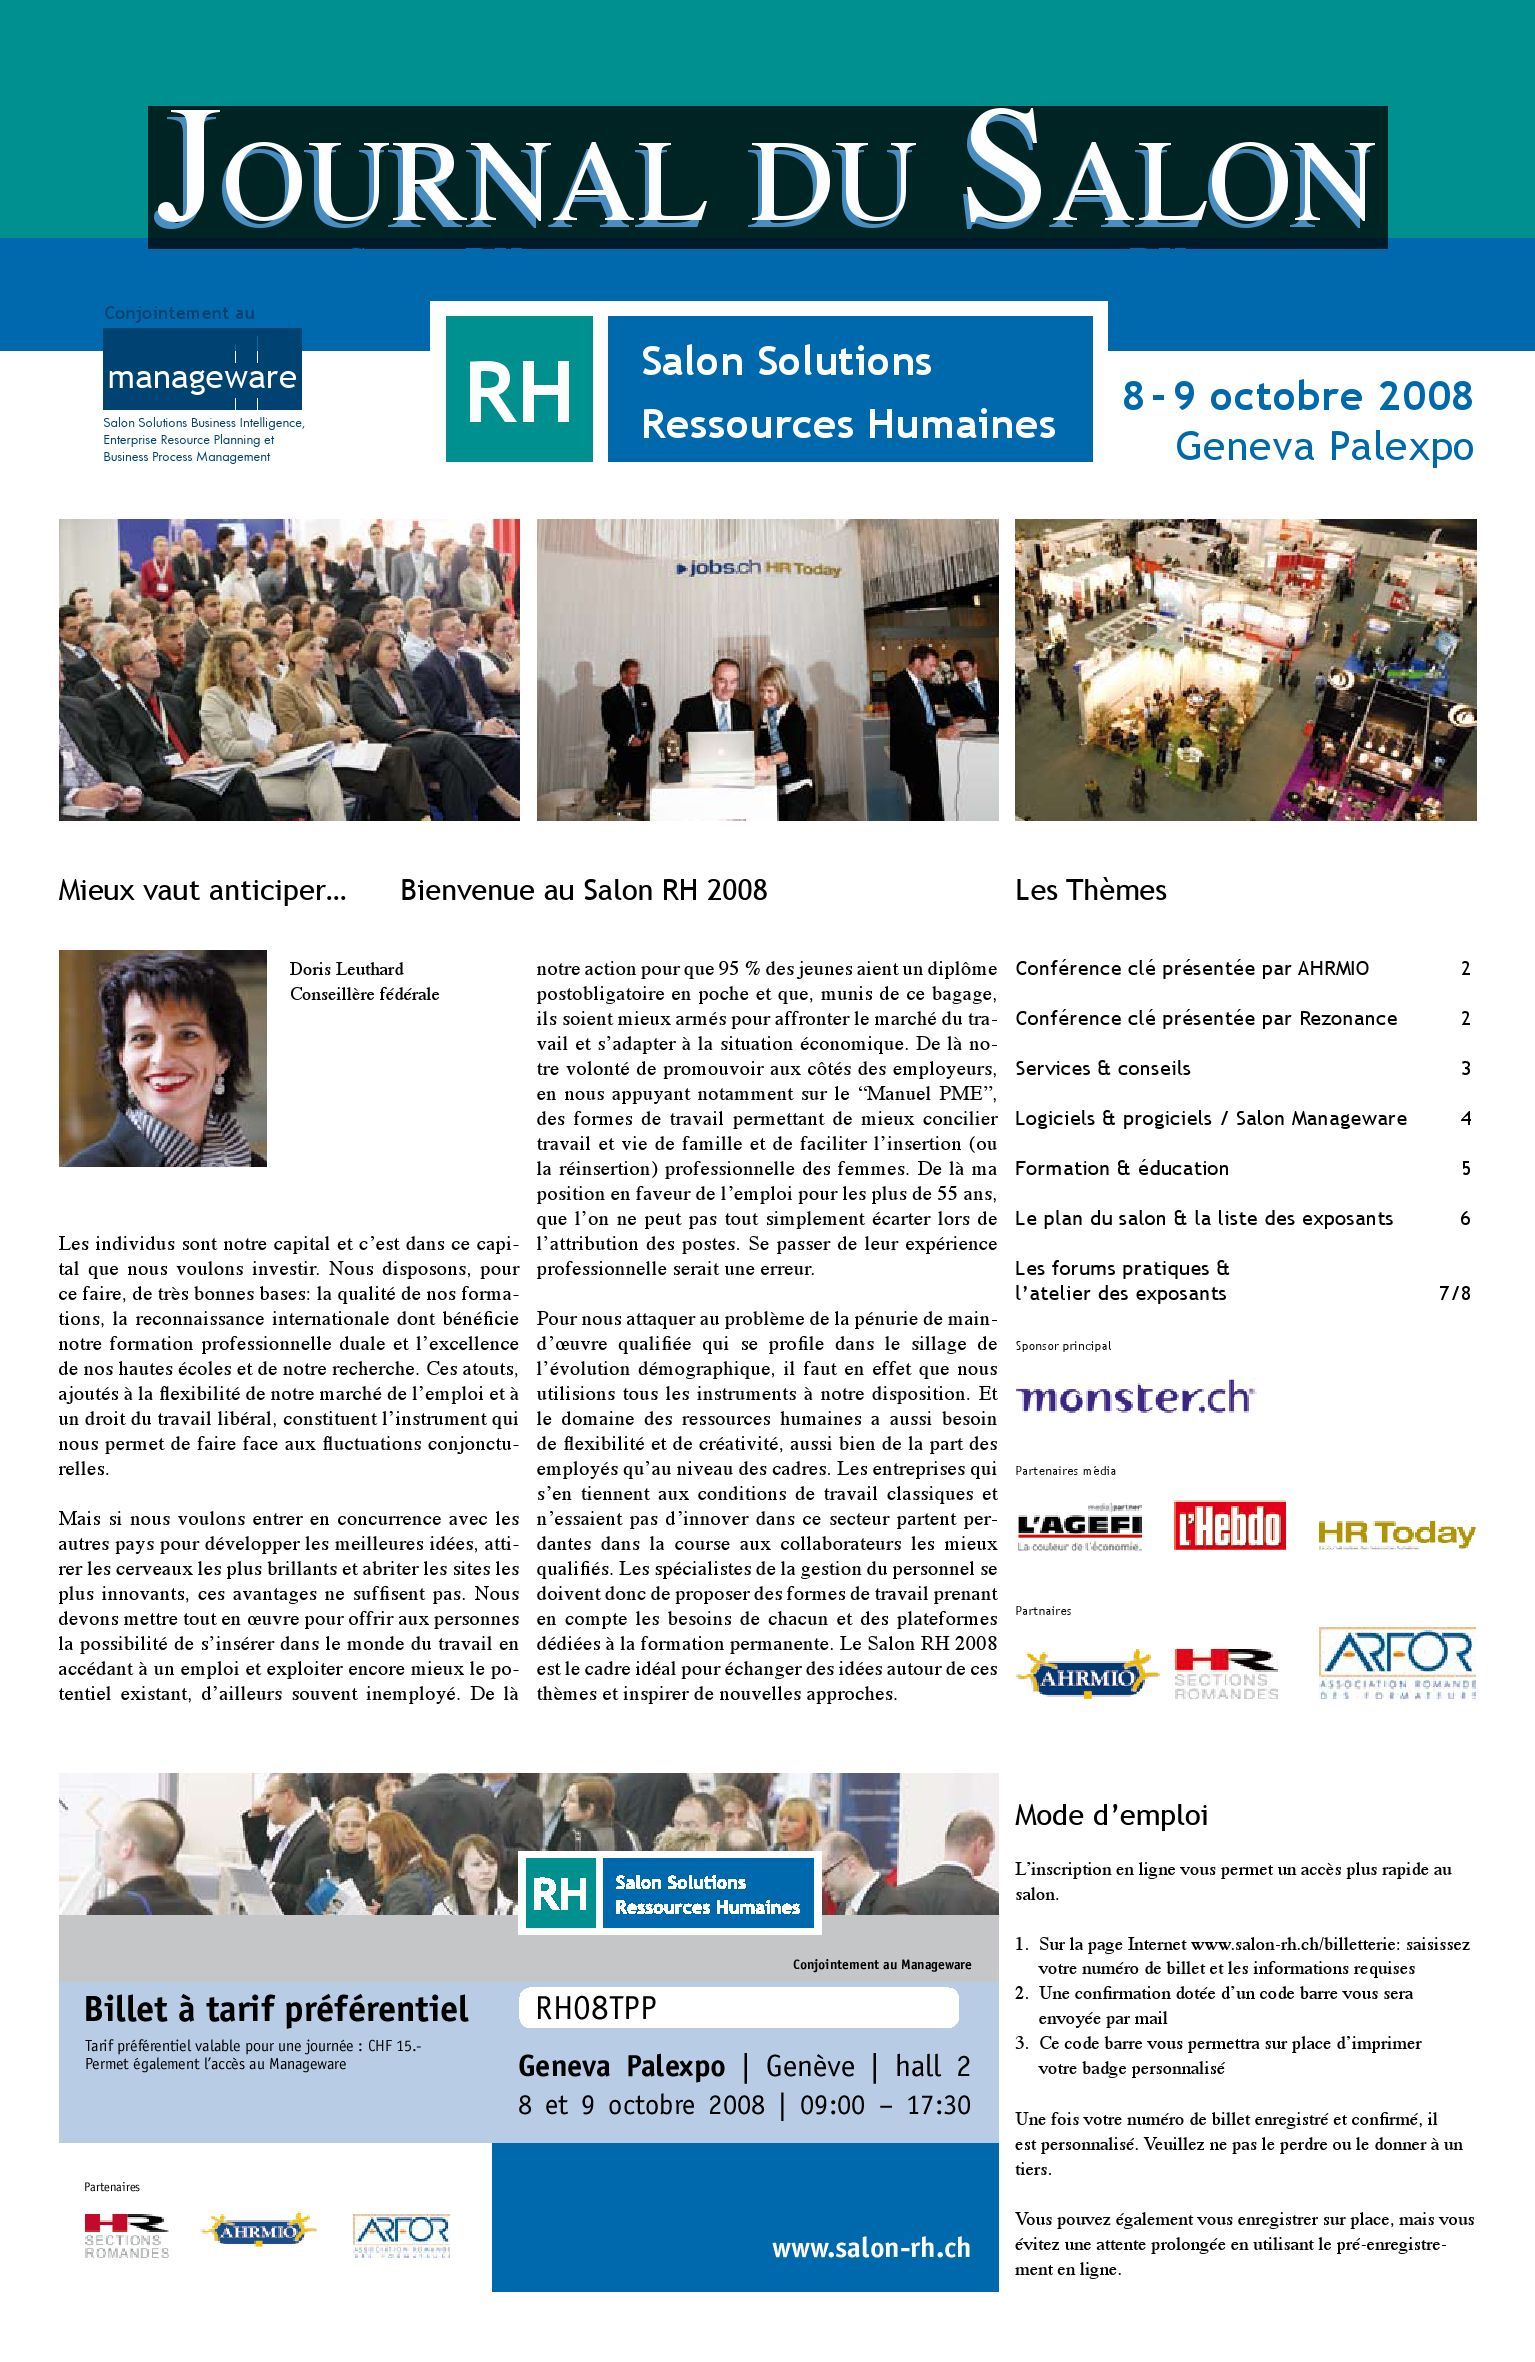 Rh salon solutions ressources humaines by frank hoefer issuu for Salon solutions rh